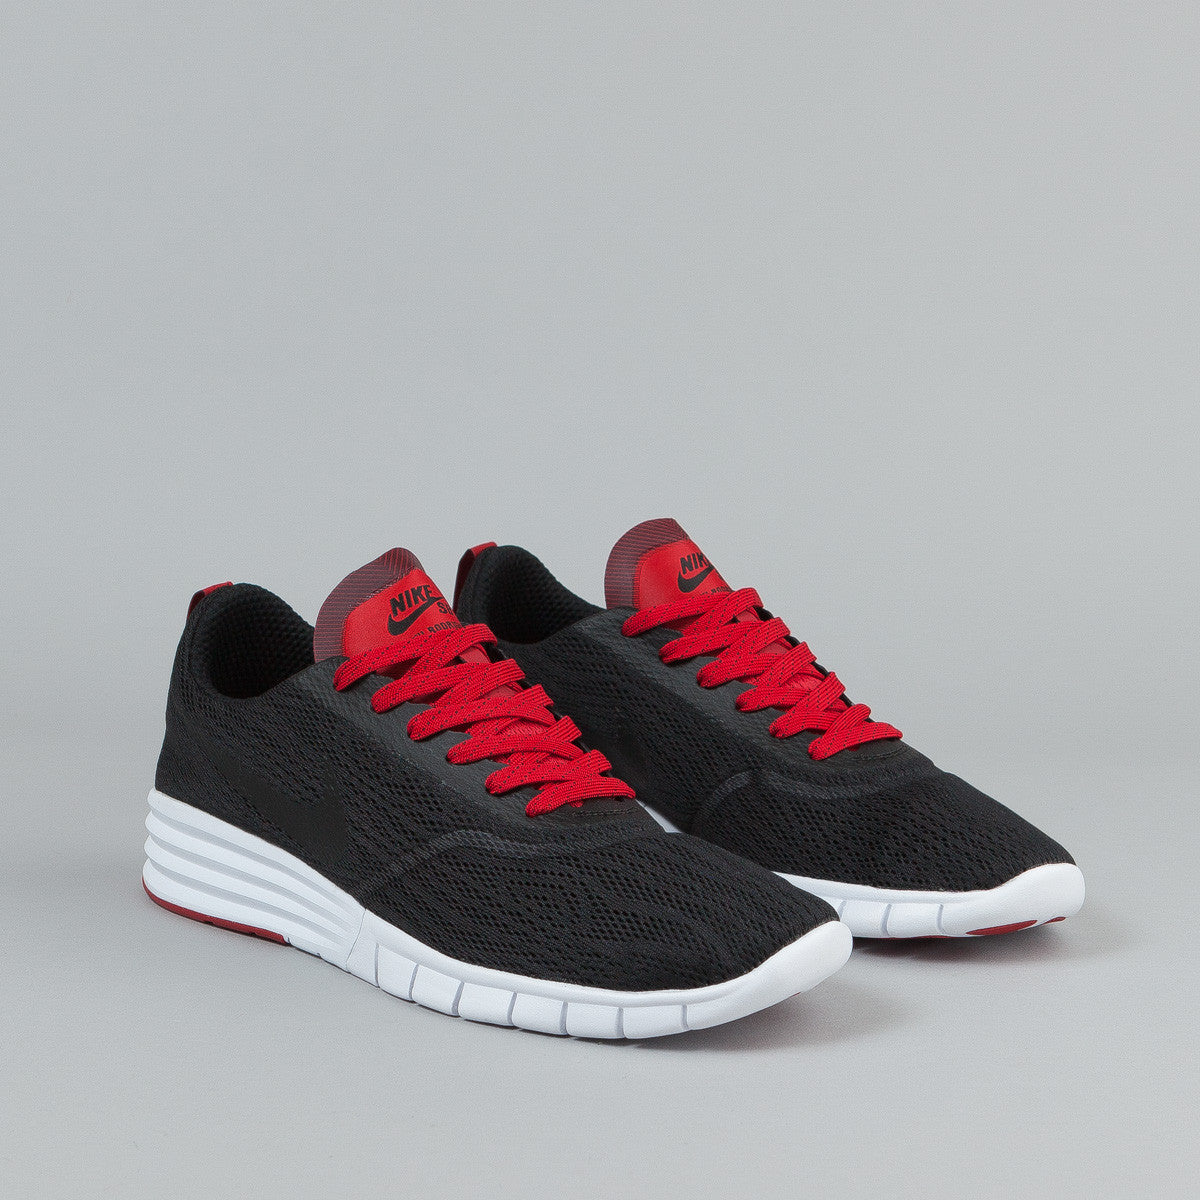 Nike SB Paul Rodriguez 9 R/R Shoes - Black / Black - Gym Red - White